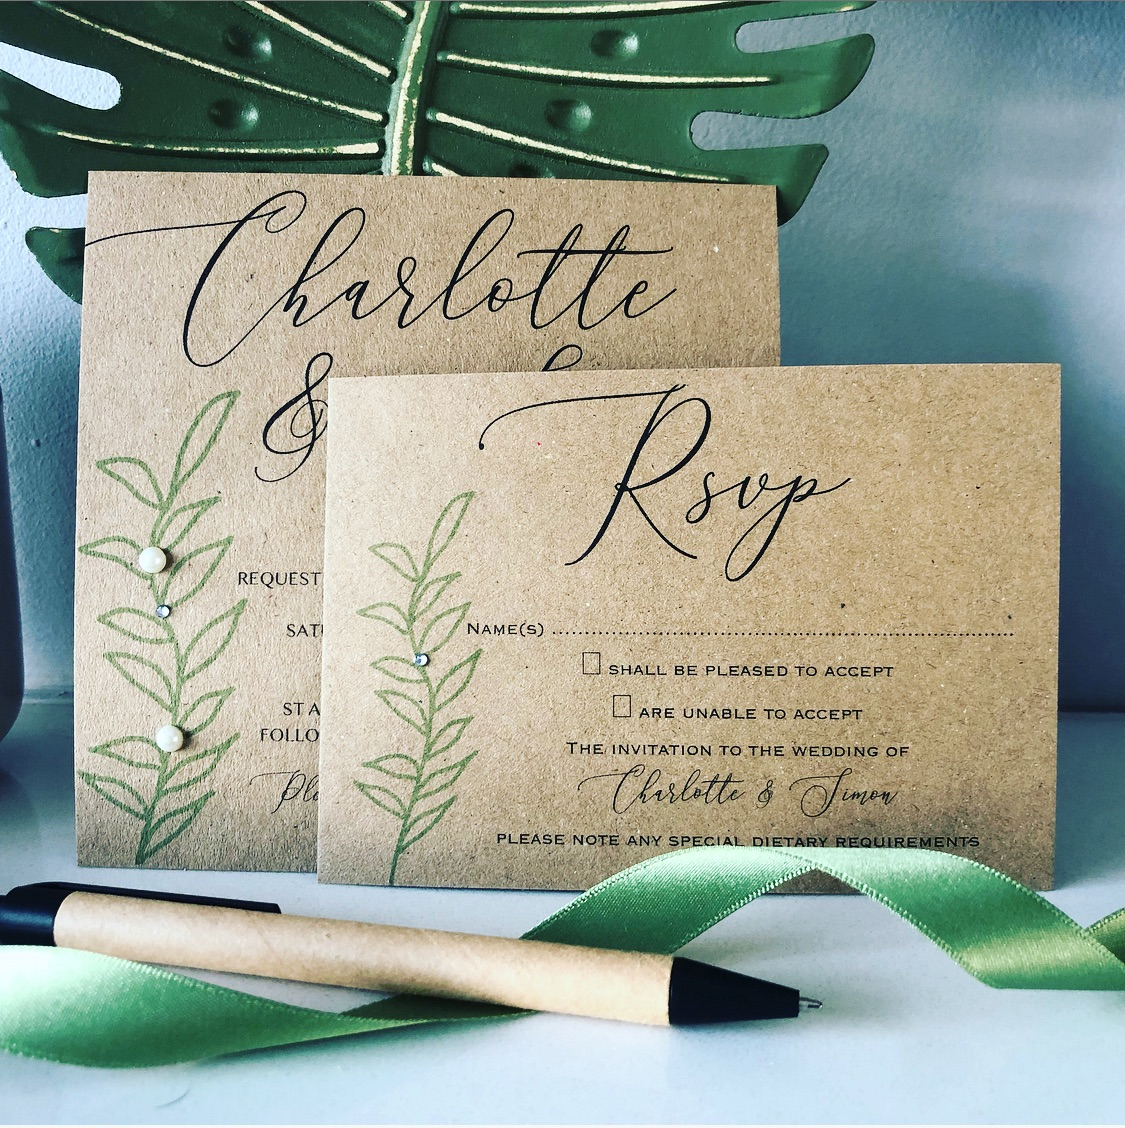 Rustic brown and green wedding invitation with rsvp card